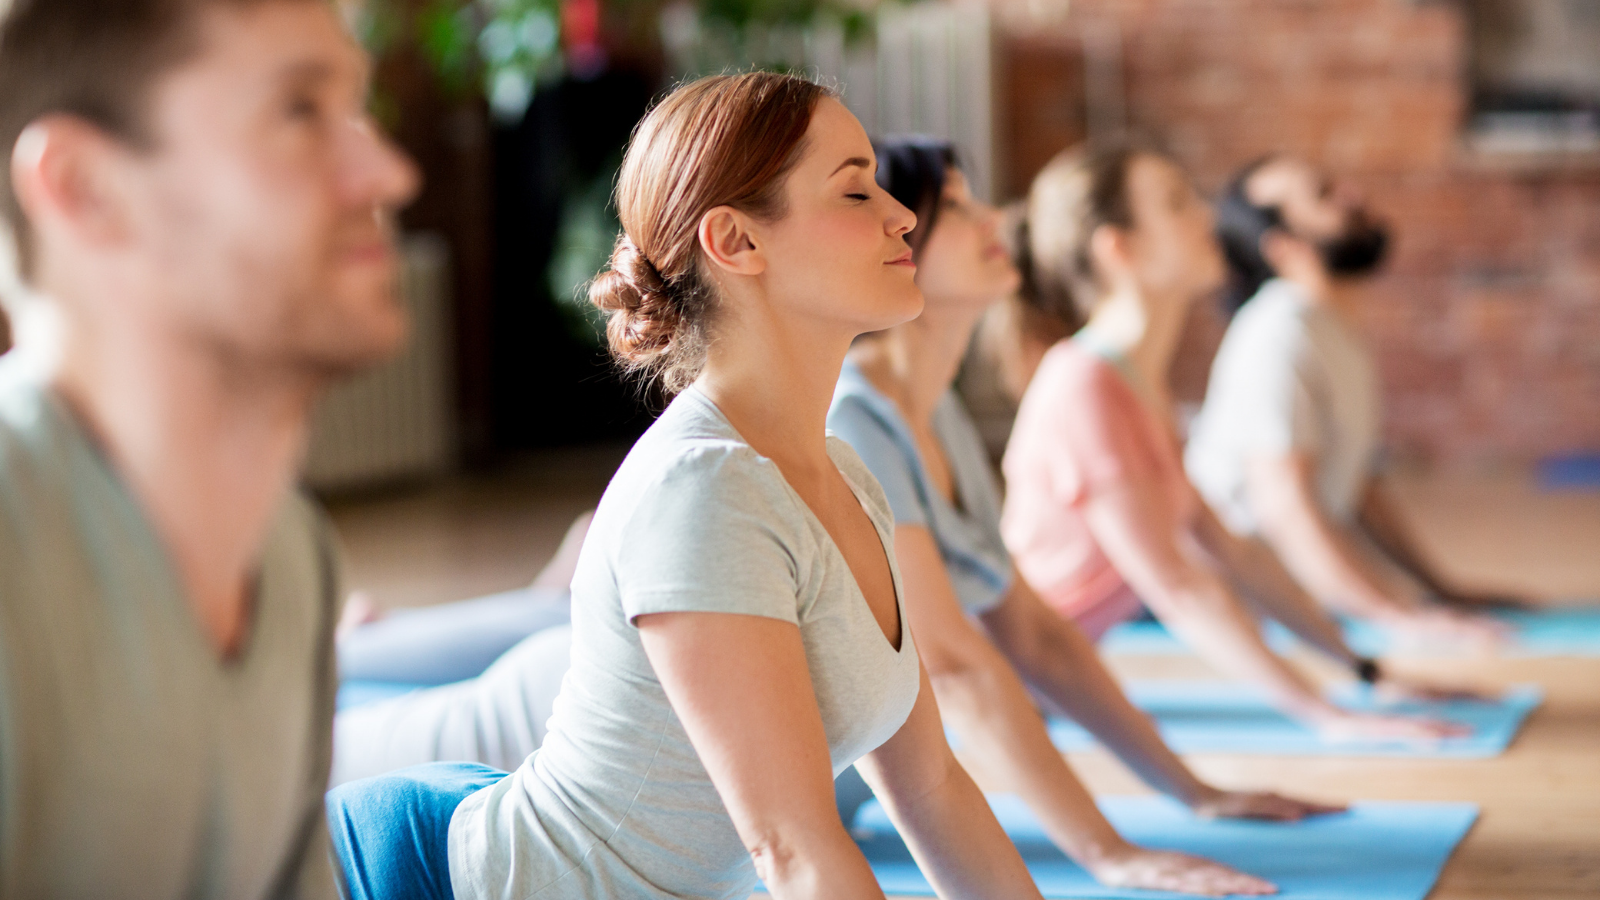 Fitness, yoga and healthy lifestyle illustrated by a group of people doing Cobra Pose on mats at a yoga studio